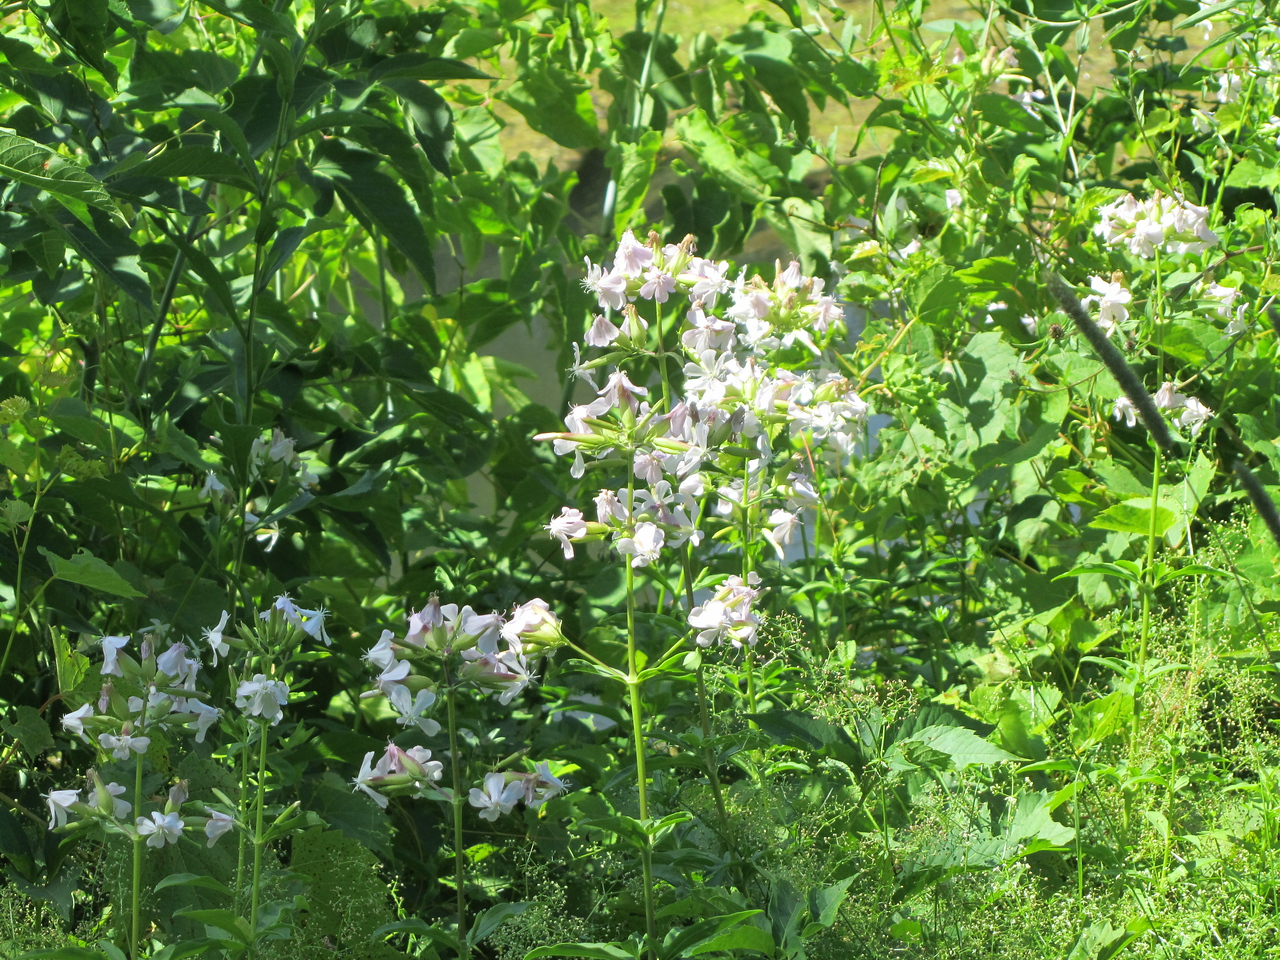 Some pretty white flower along the bank of the canal.